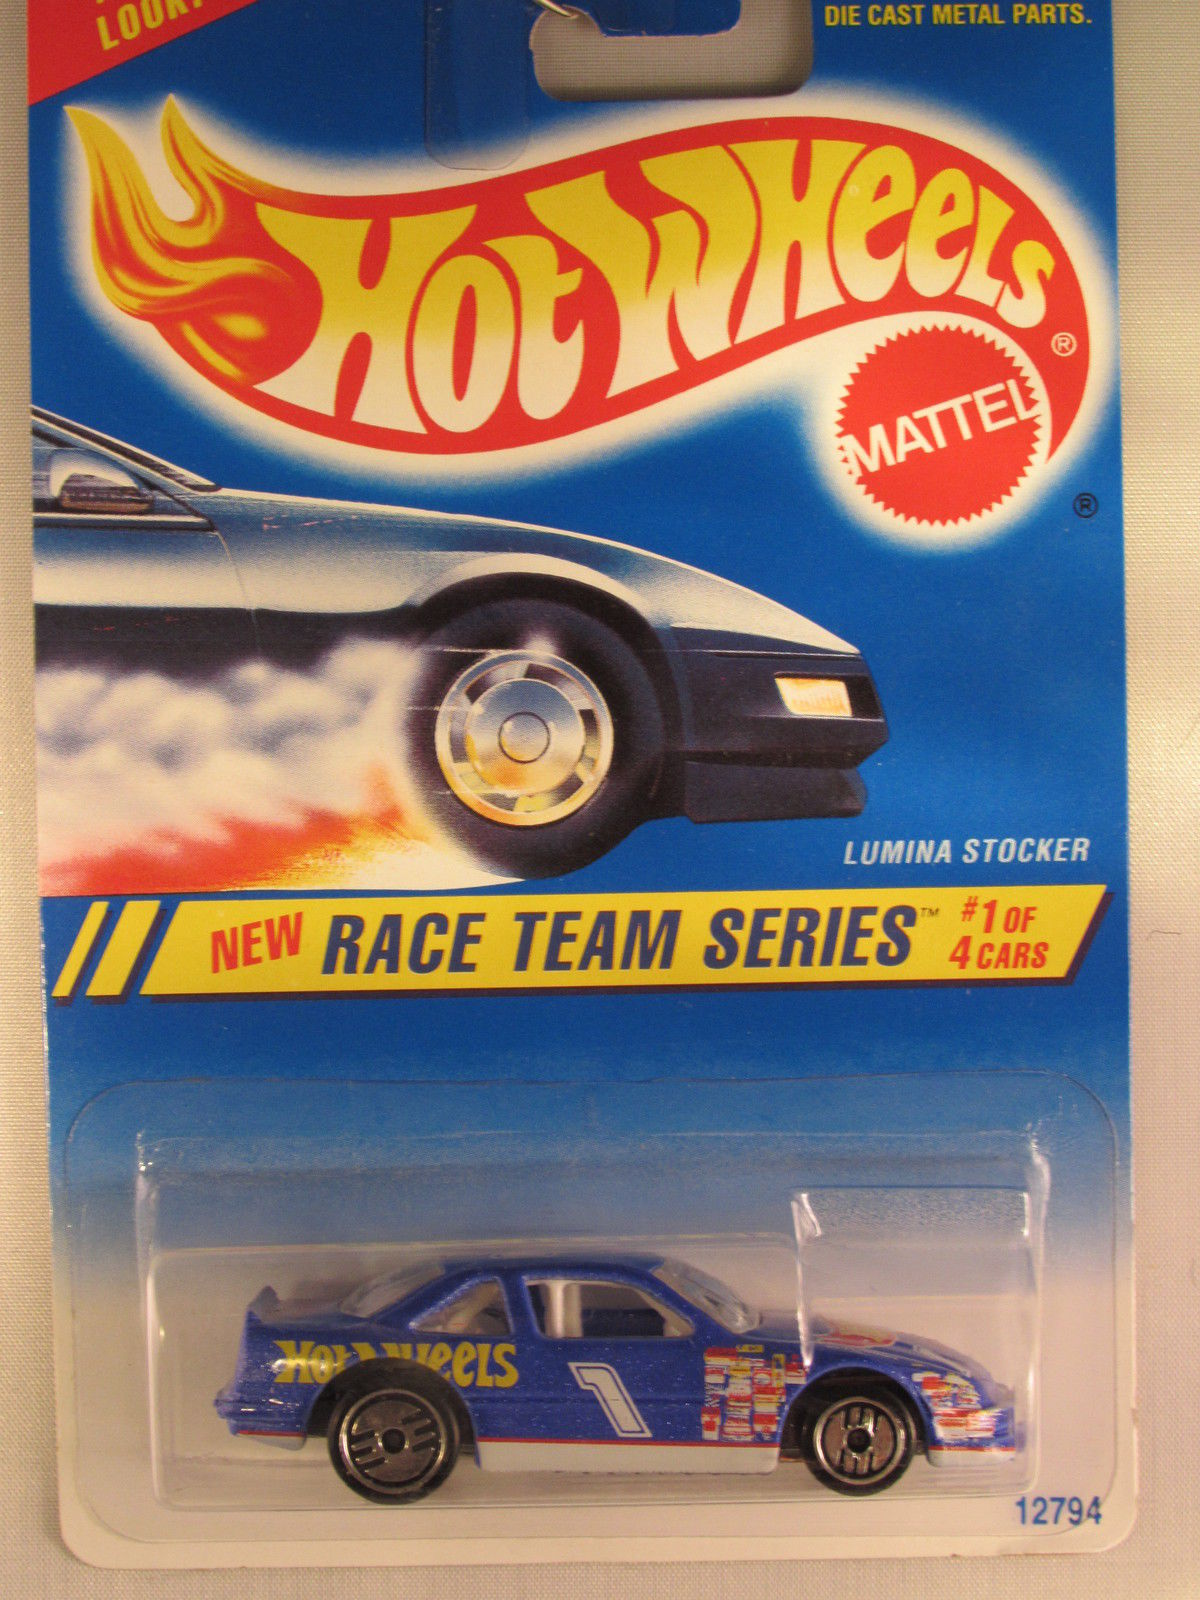 HOT WHEELS 1994 RACE TEAM SERIES LUMINA STOCKER LIGHT BLUE